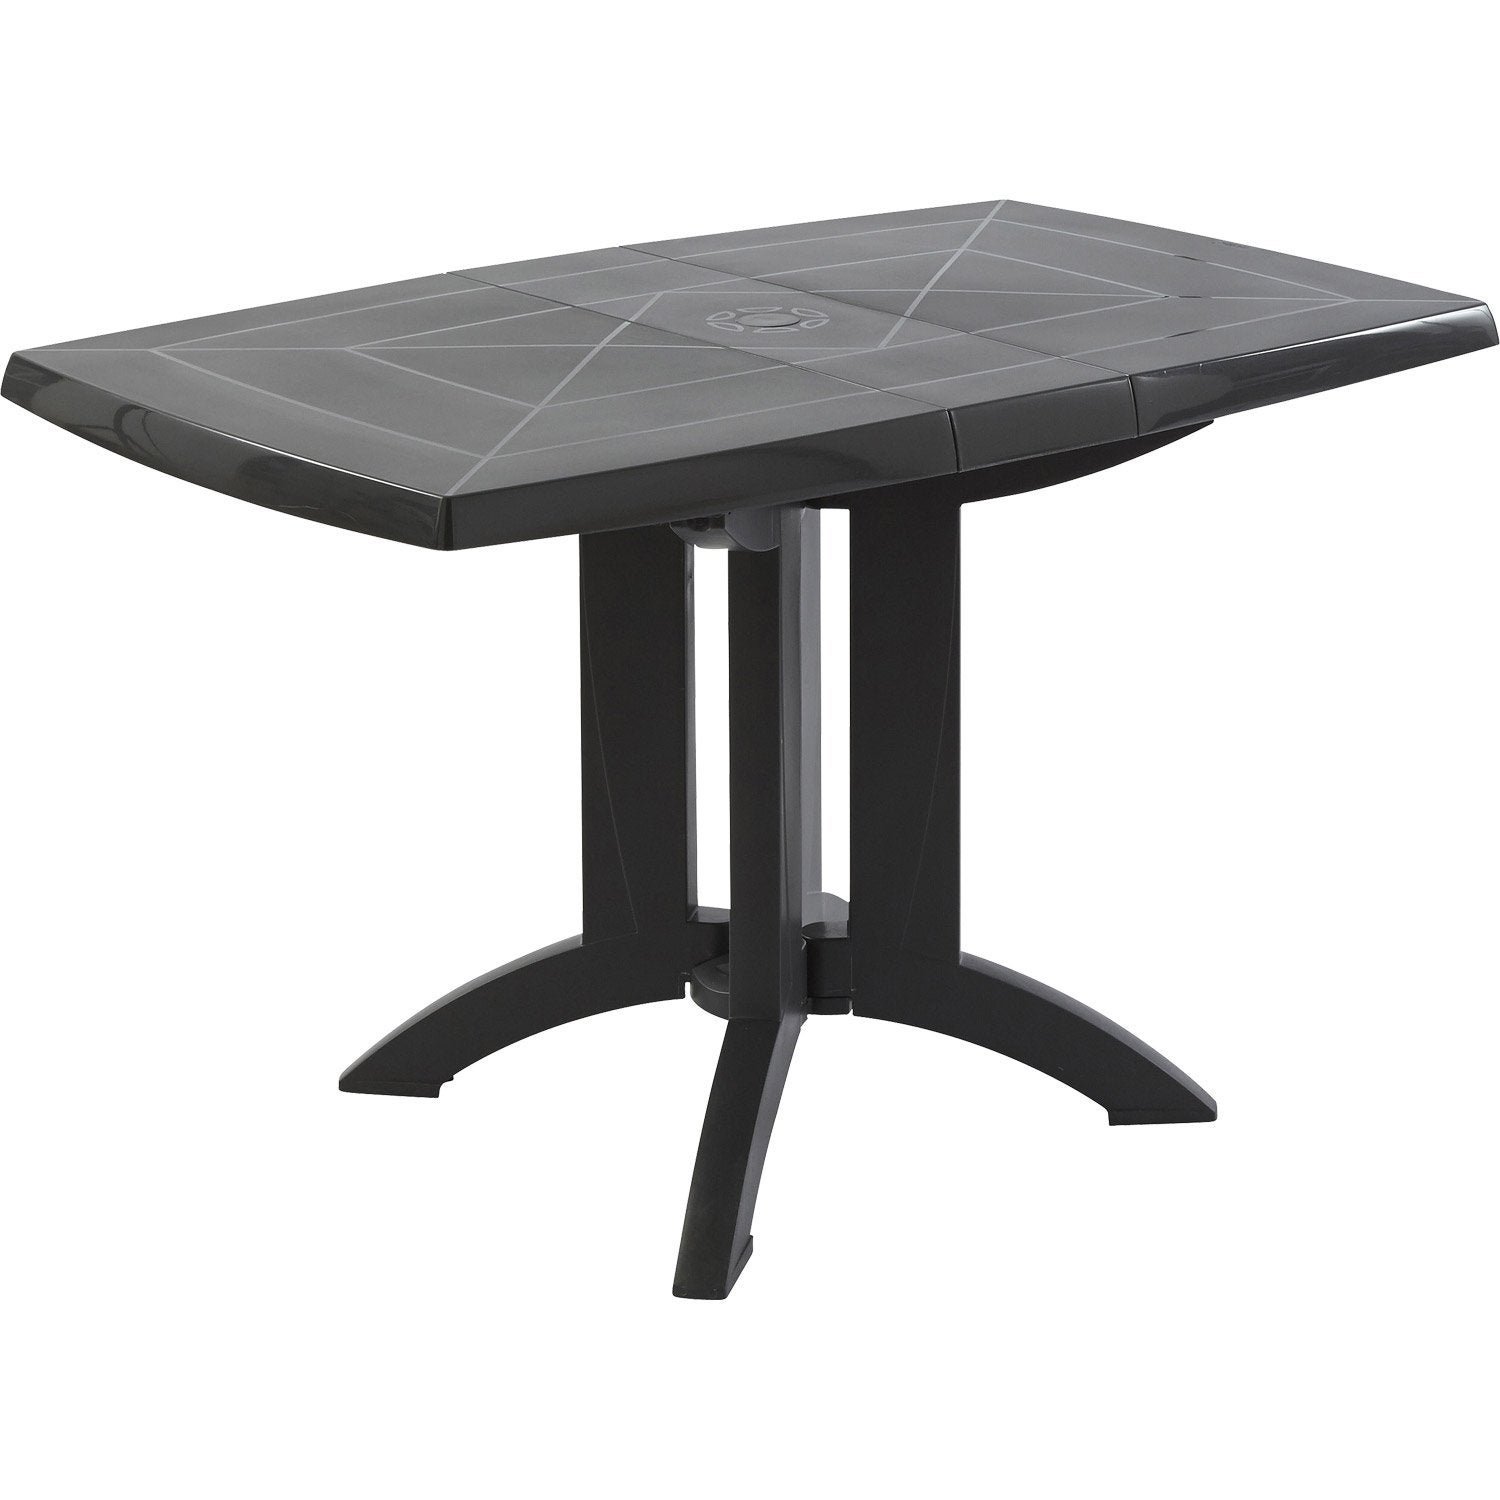 Table de jardin grosfillex v ga rectangulaire anthracite 4 - Table de jardin pliable ...